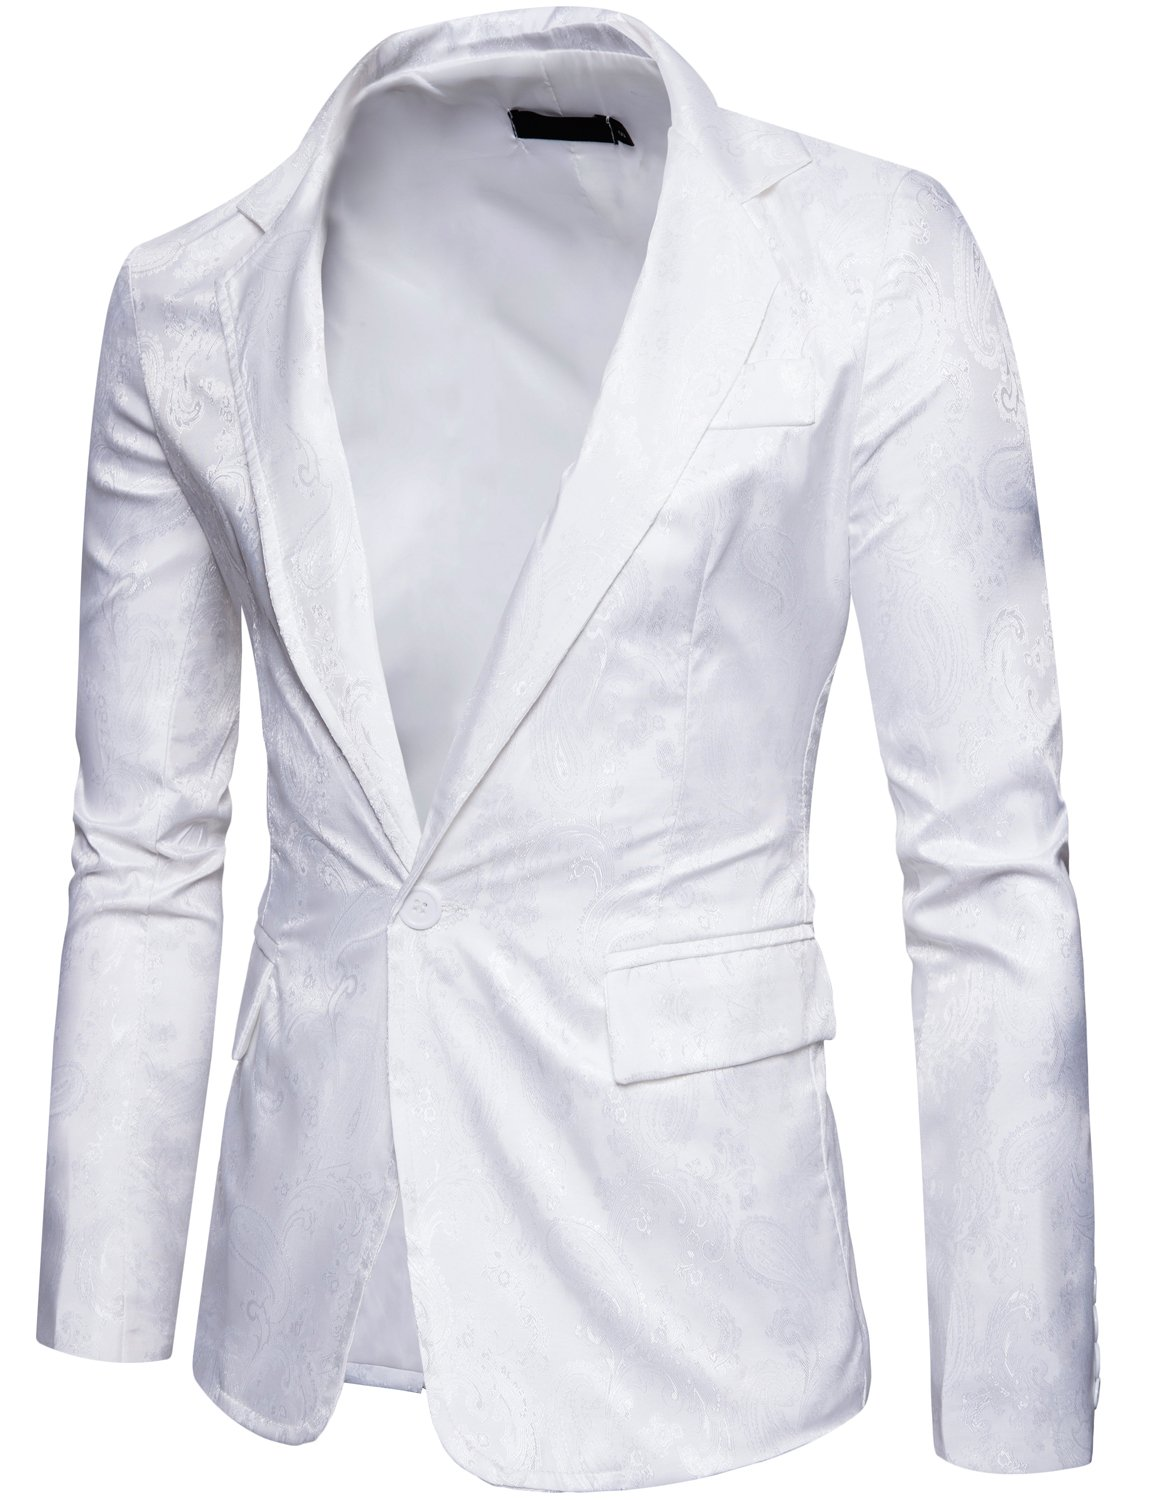 ZEROYAA Mens Hipster Slim Fit One Button Single Breasted Paisley Stylish Suit Jacket Z67- White XX-Large